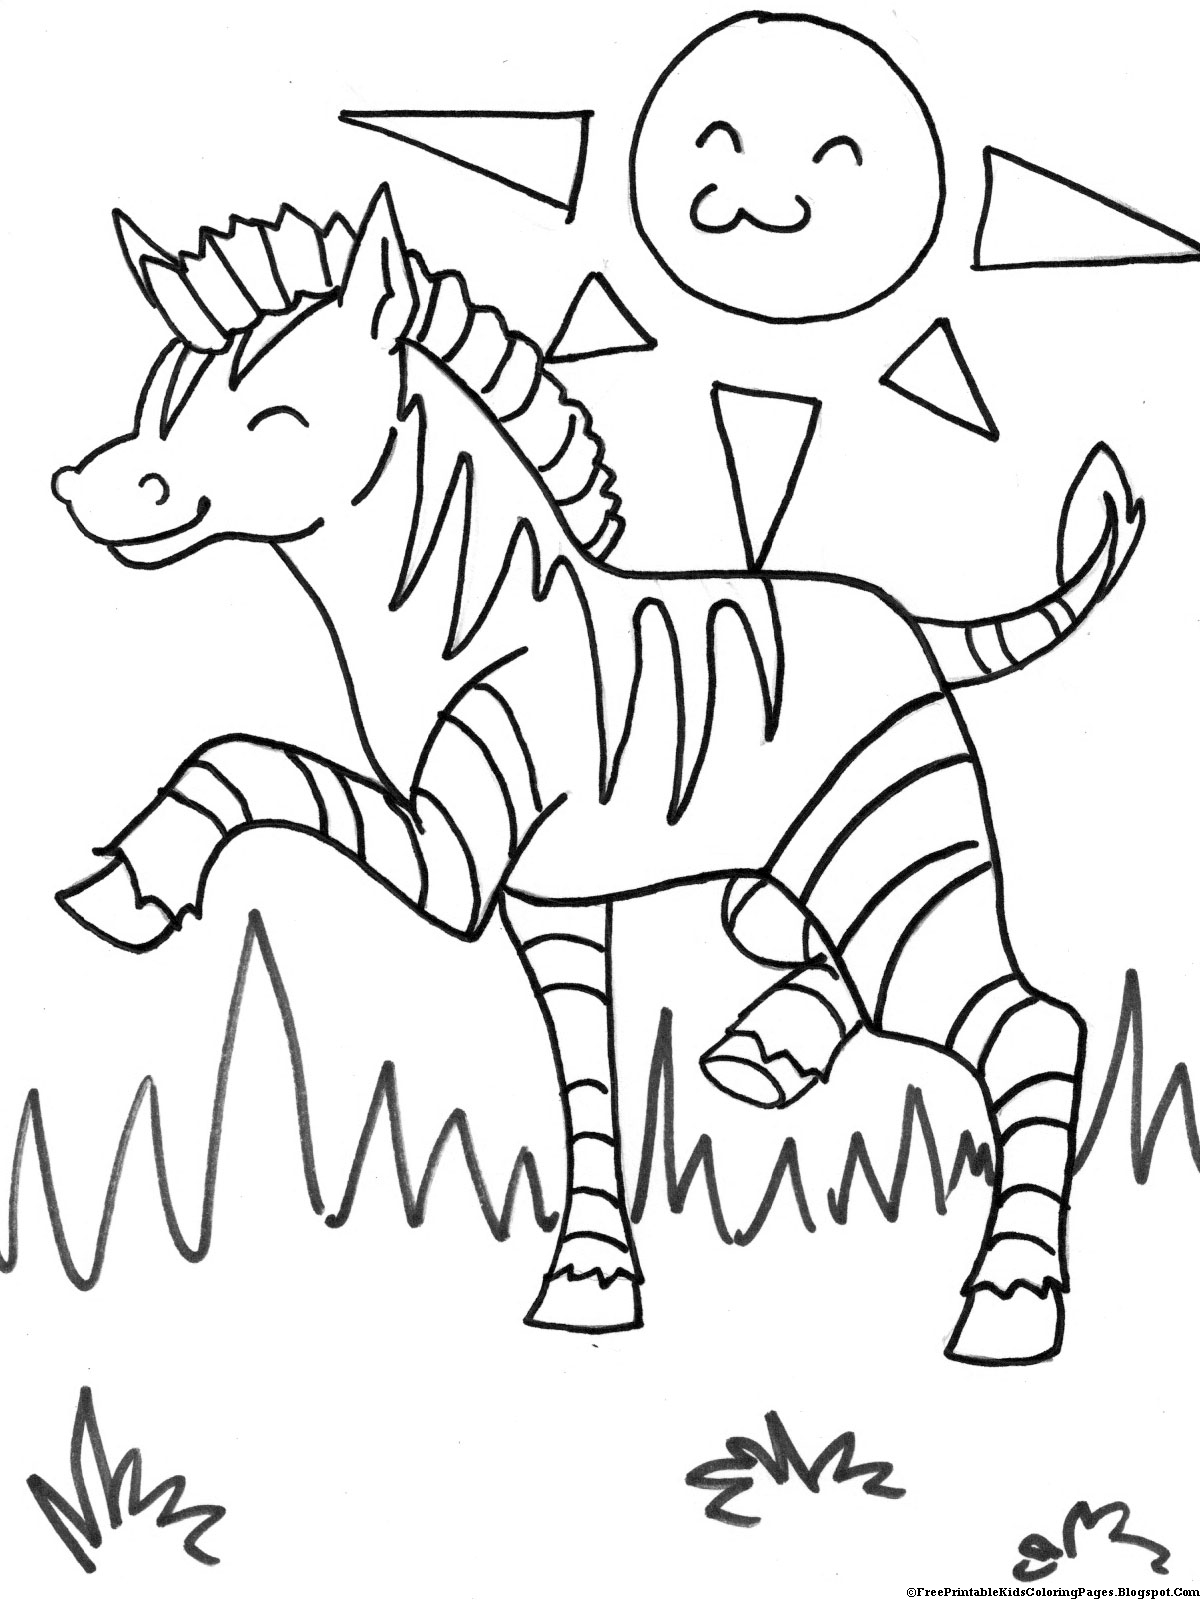 childrens colouring pictures free printable frozen coloring pages for kids best childrens pictures colouring